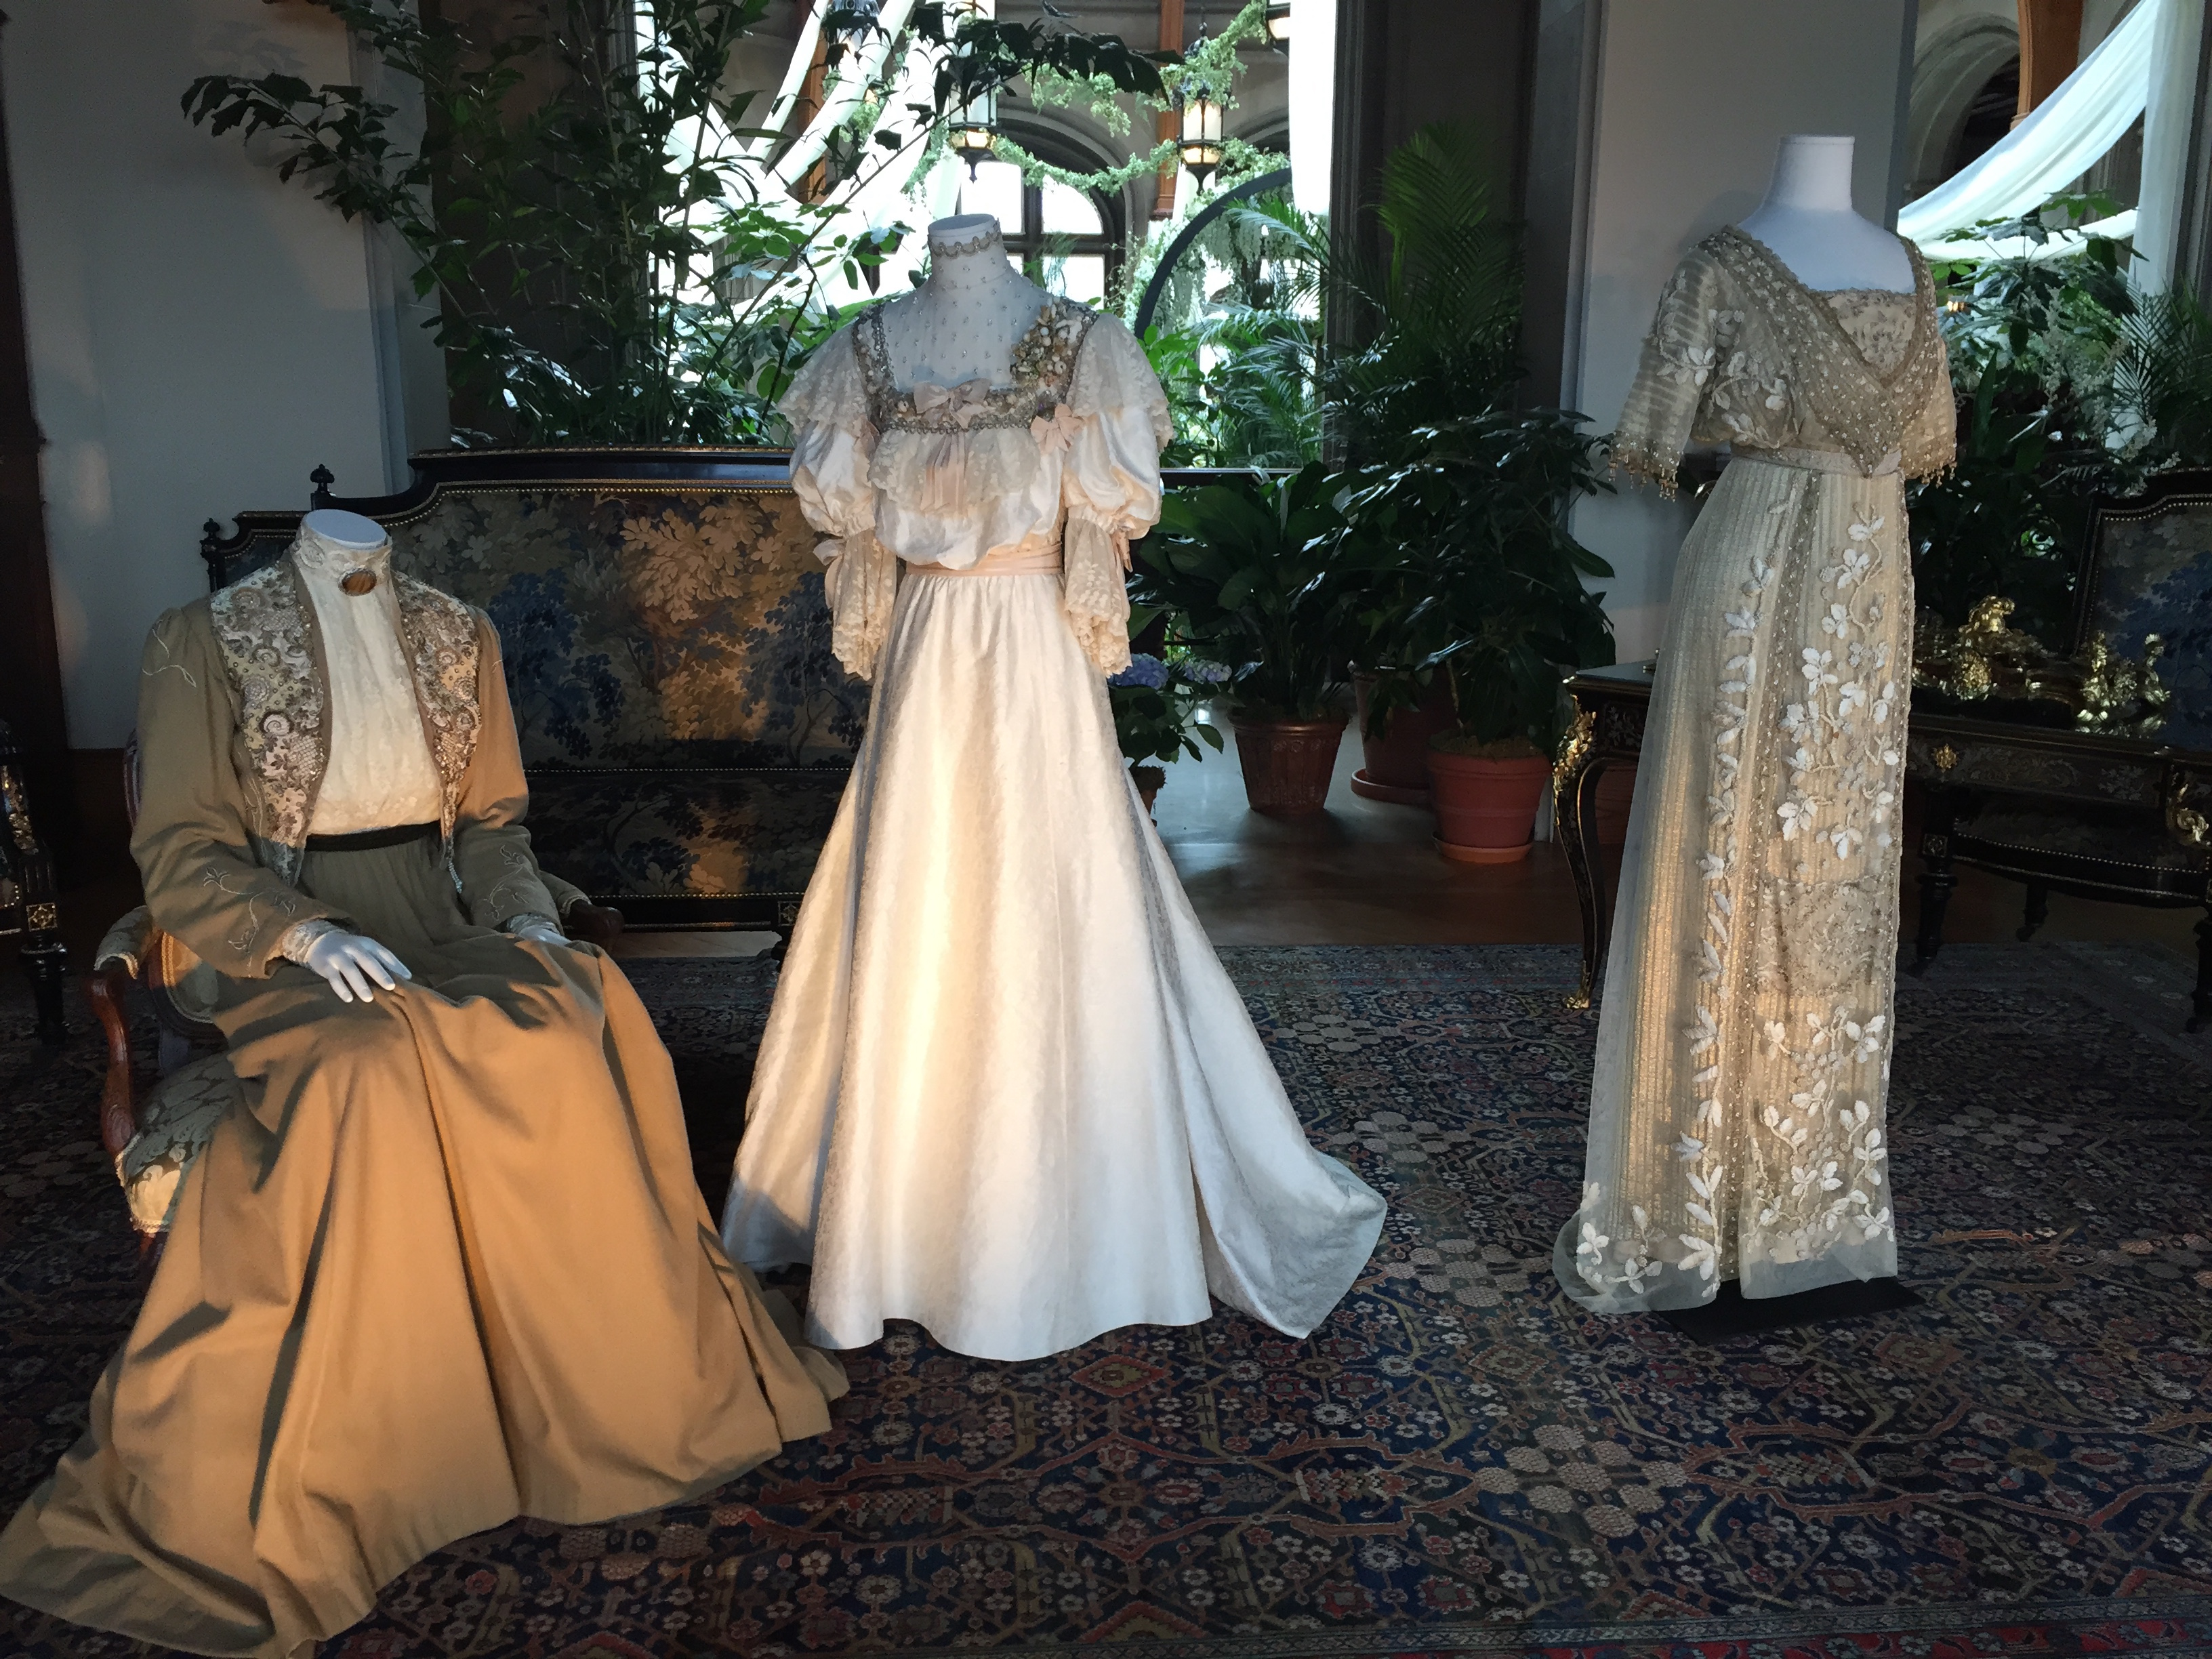 See Biltmore's latest display while staying at our Asheville Bed and Breakfast Inn